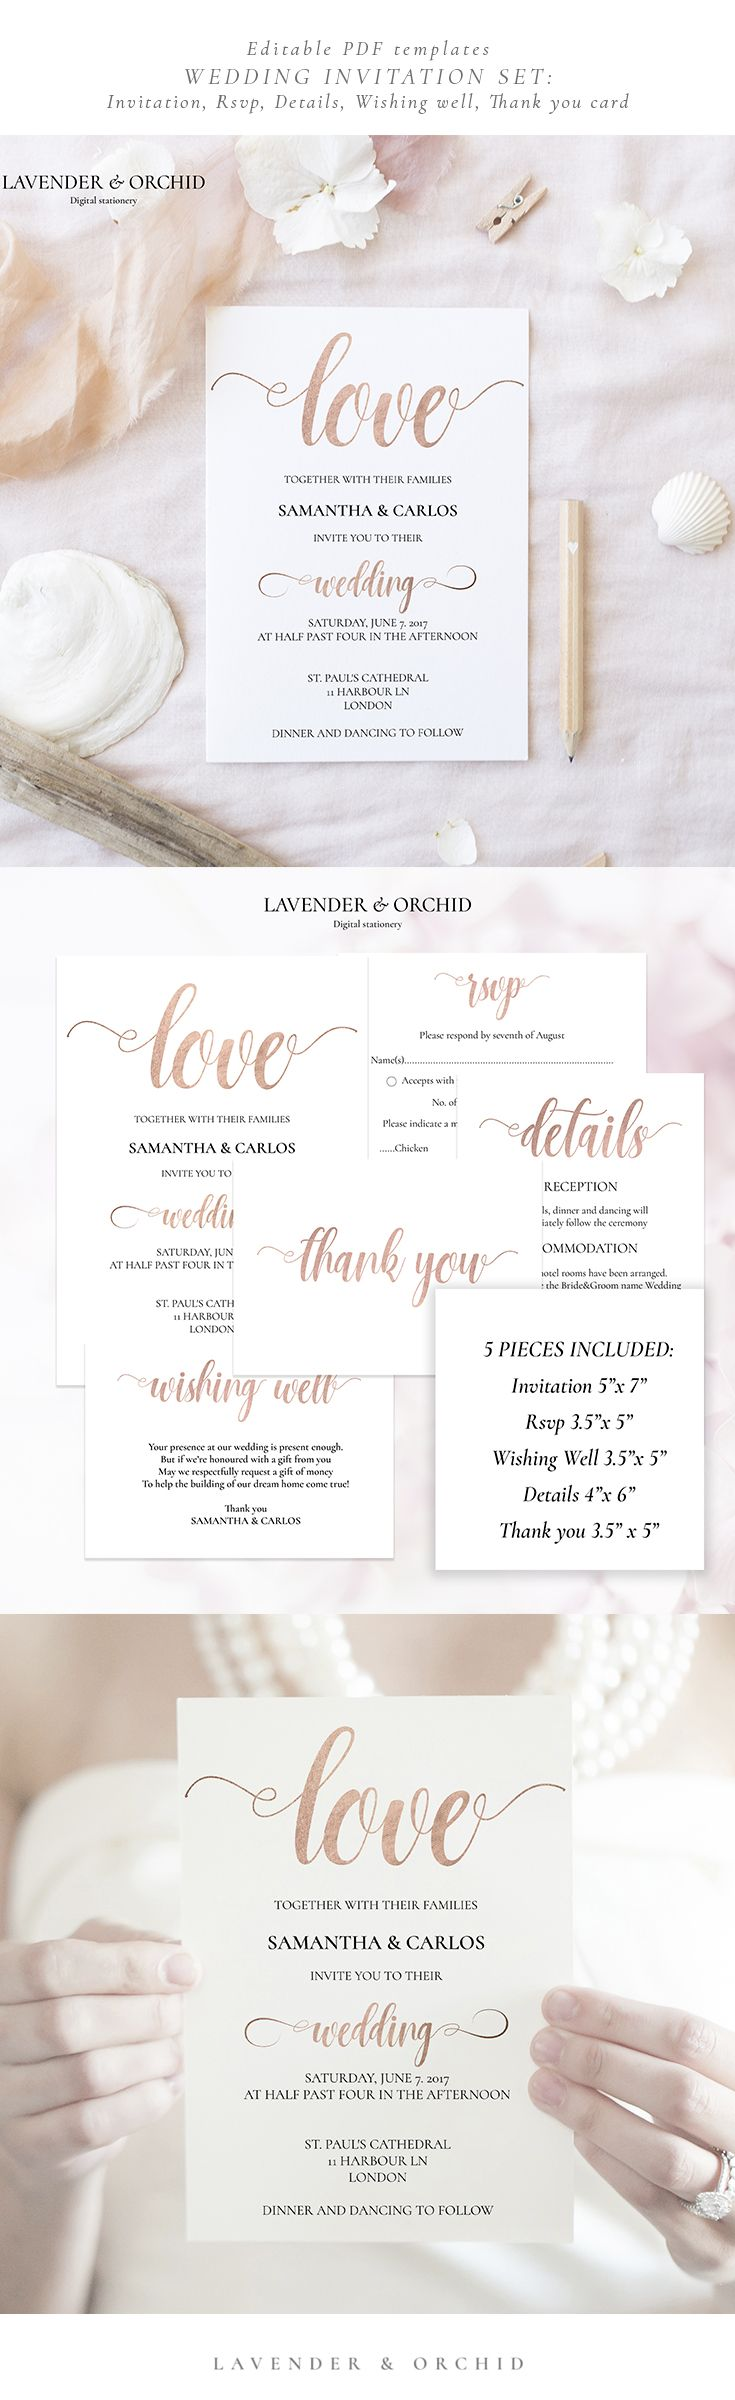 122 best Lavender & Orchid - Wedding stationery templates images ...